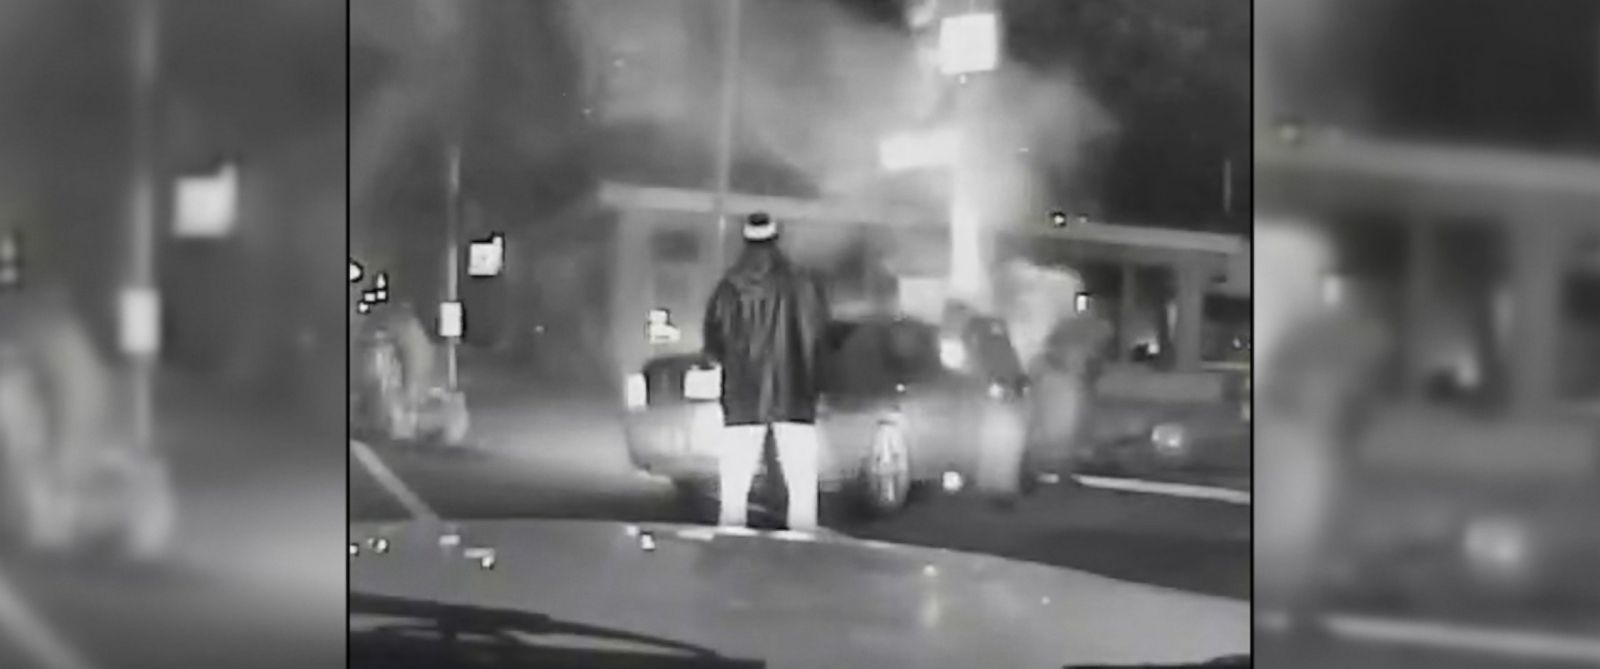 VIDEO: Louisville police officer and Good Samaritan rescue two men from a burning car.